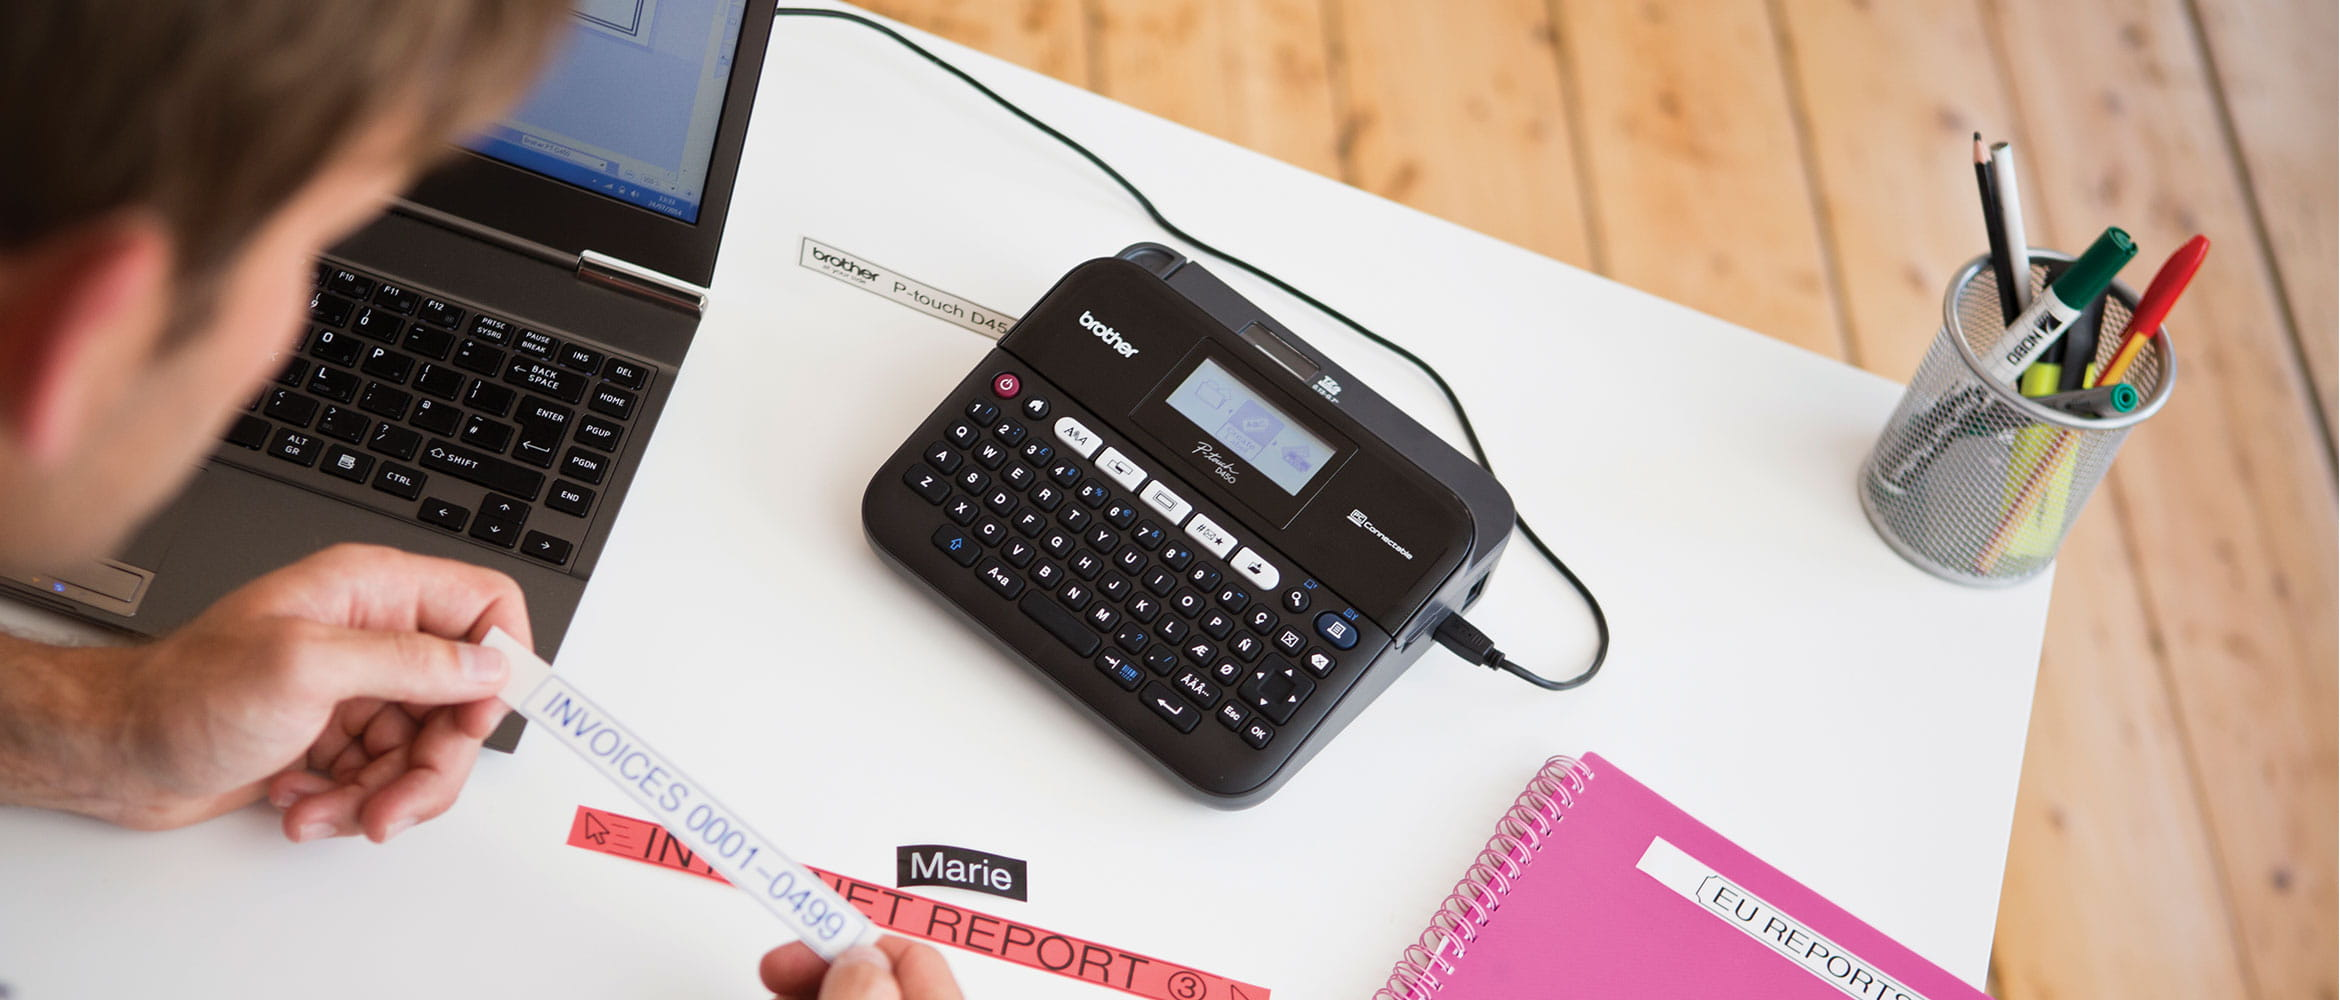 Man using Brother label printer to label invoices at his desk